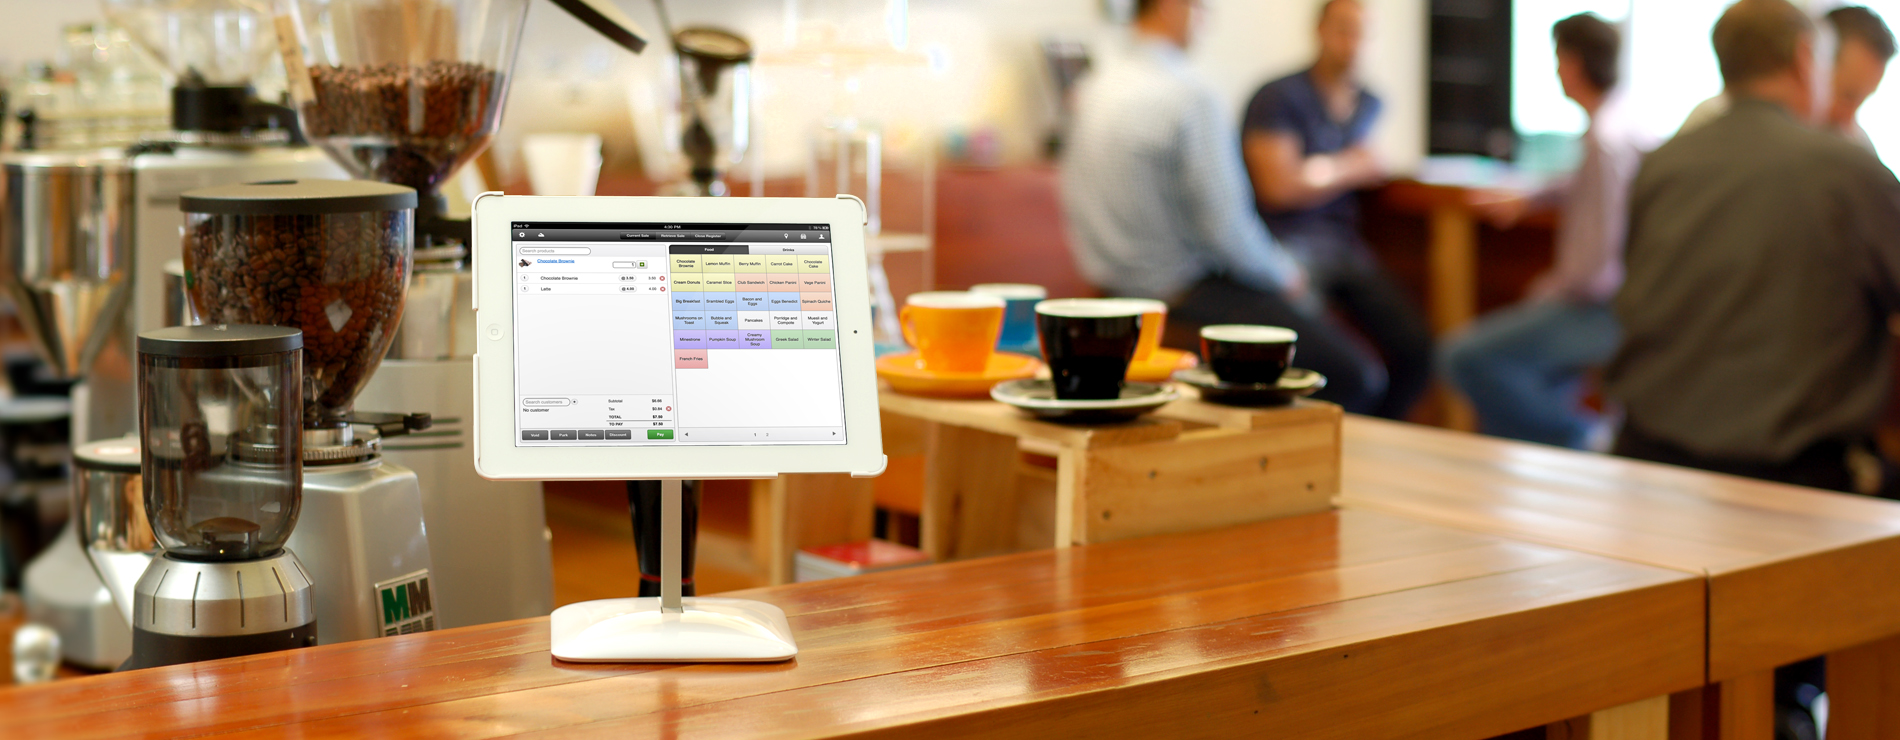 The iPad As A Point Of Sale System